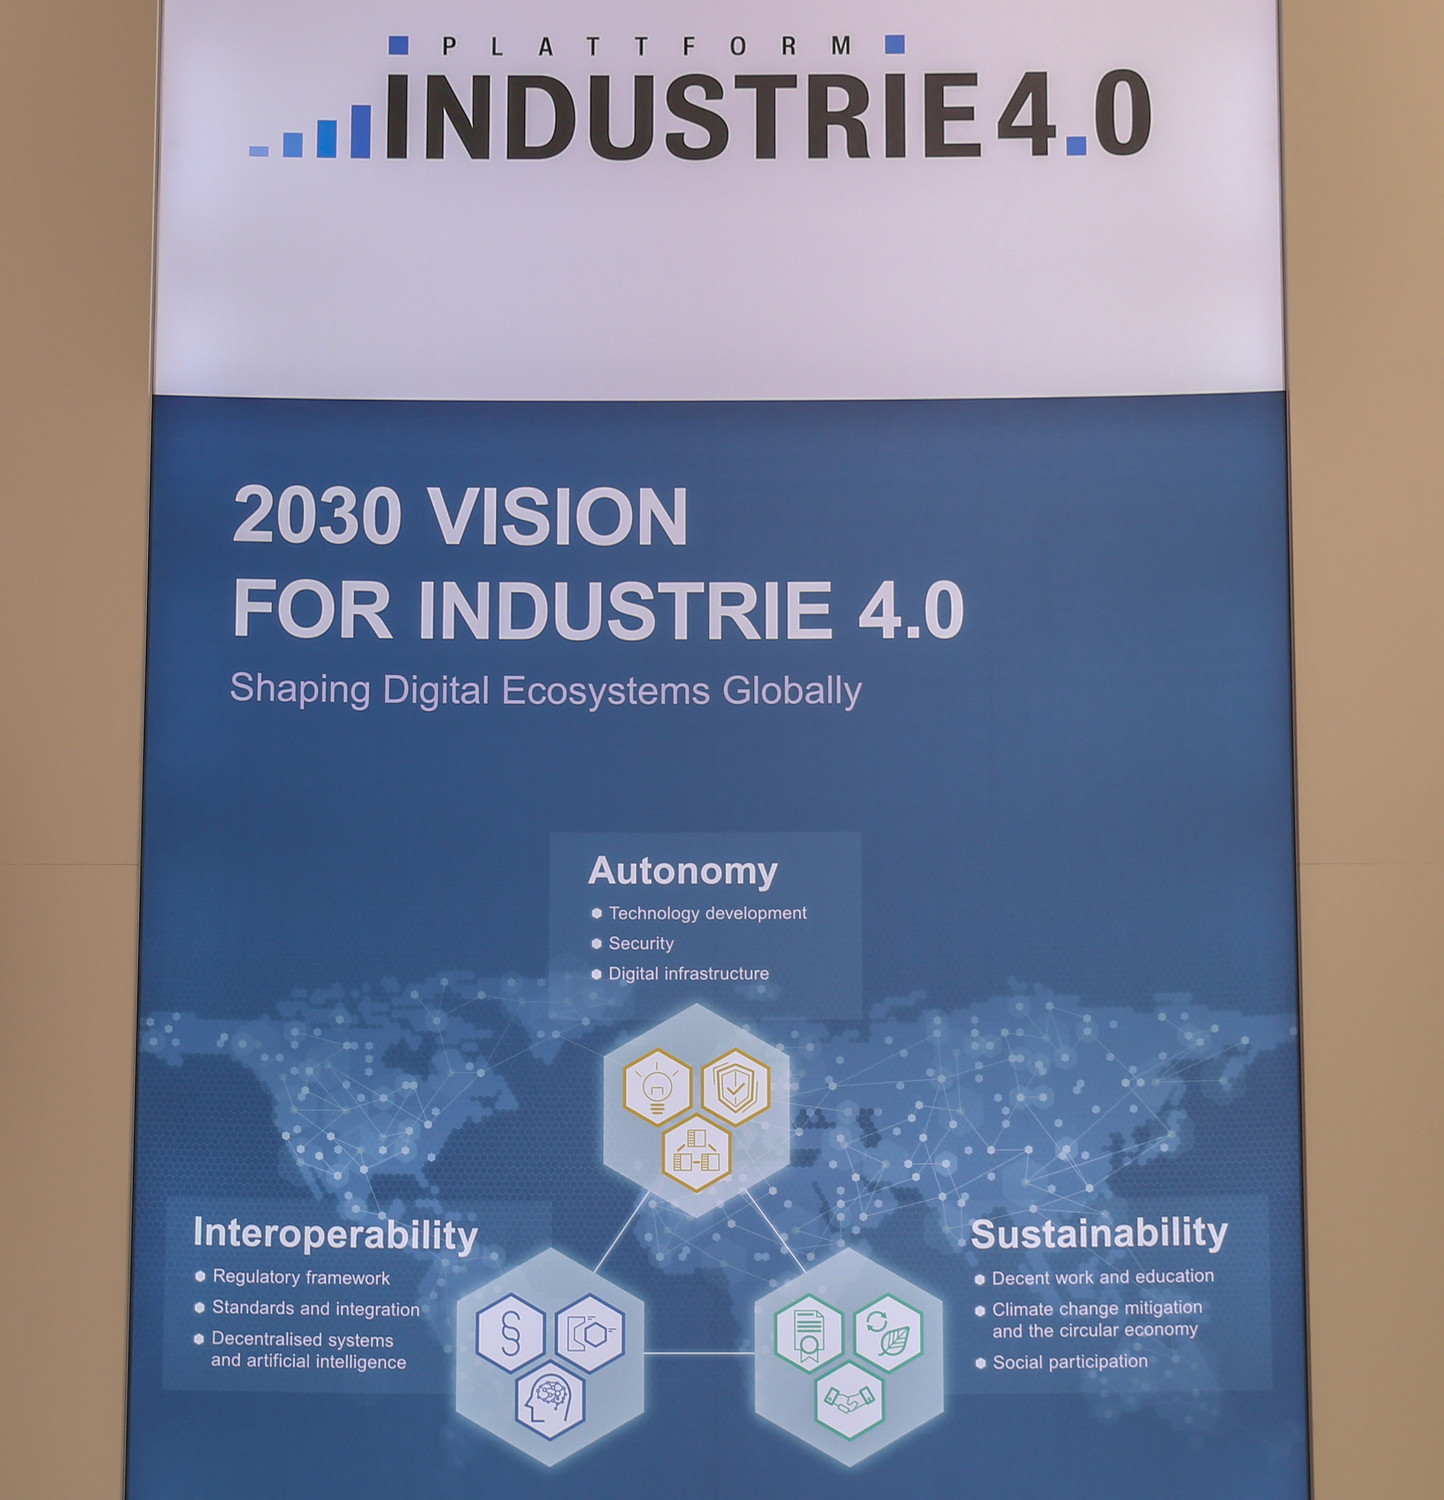 2030 Vision for Industry 4.0